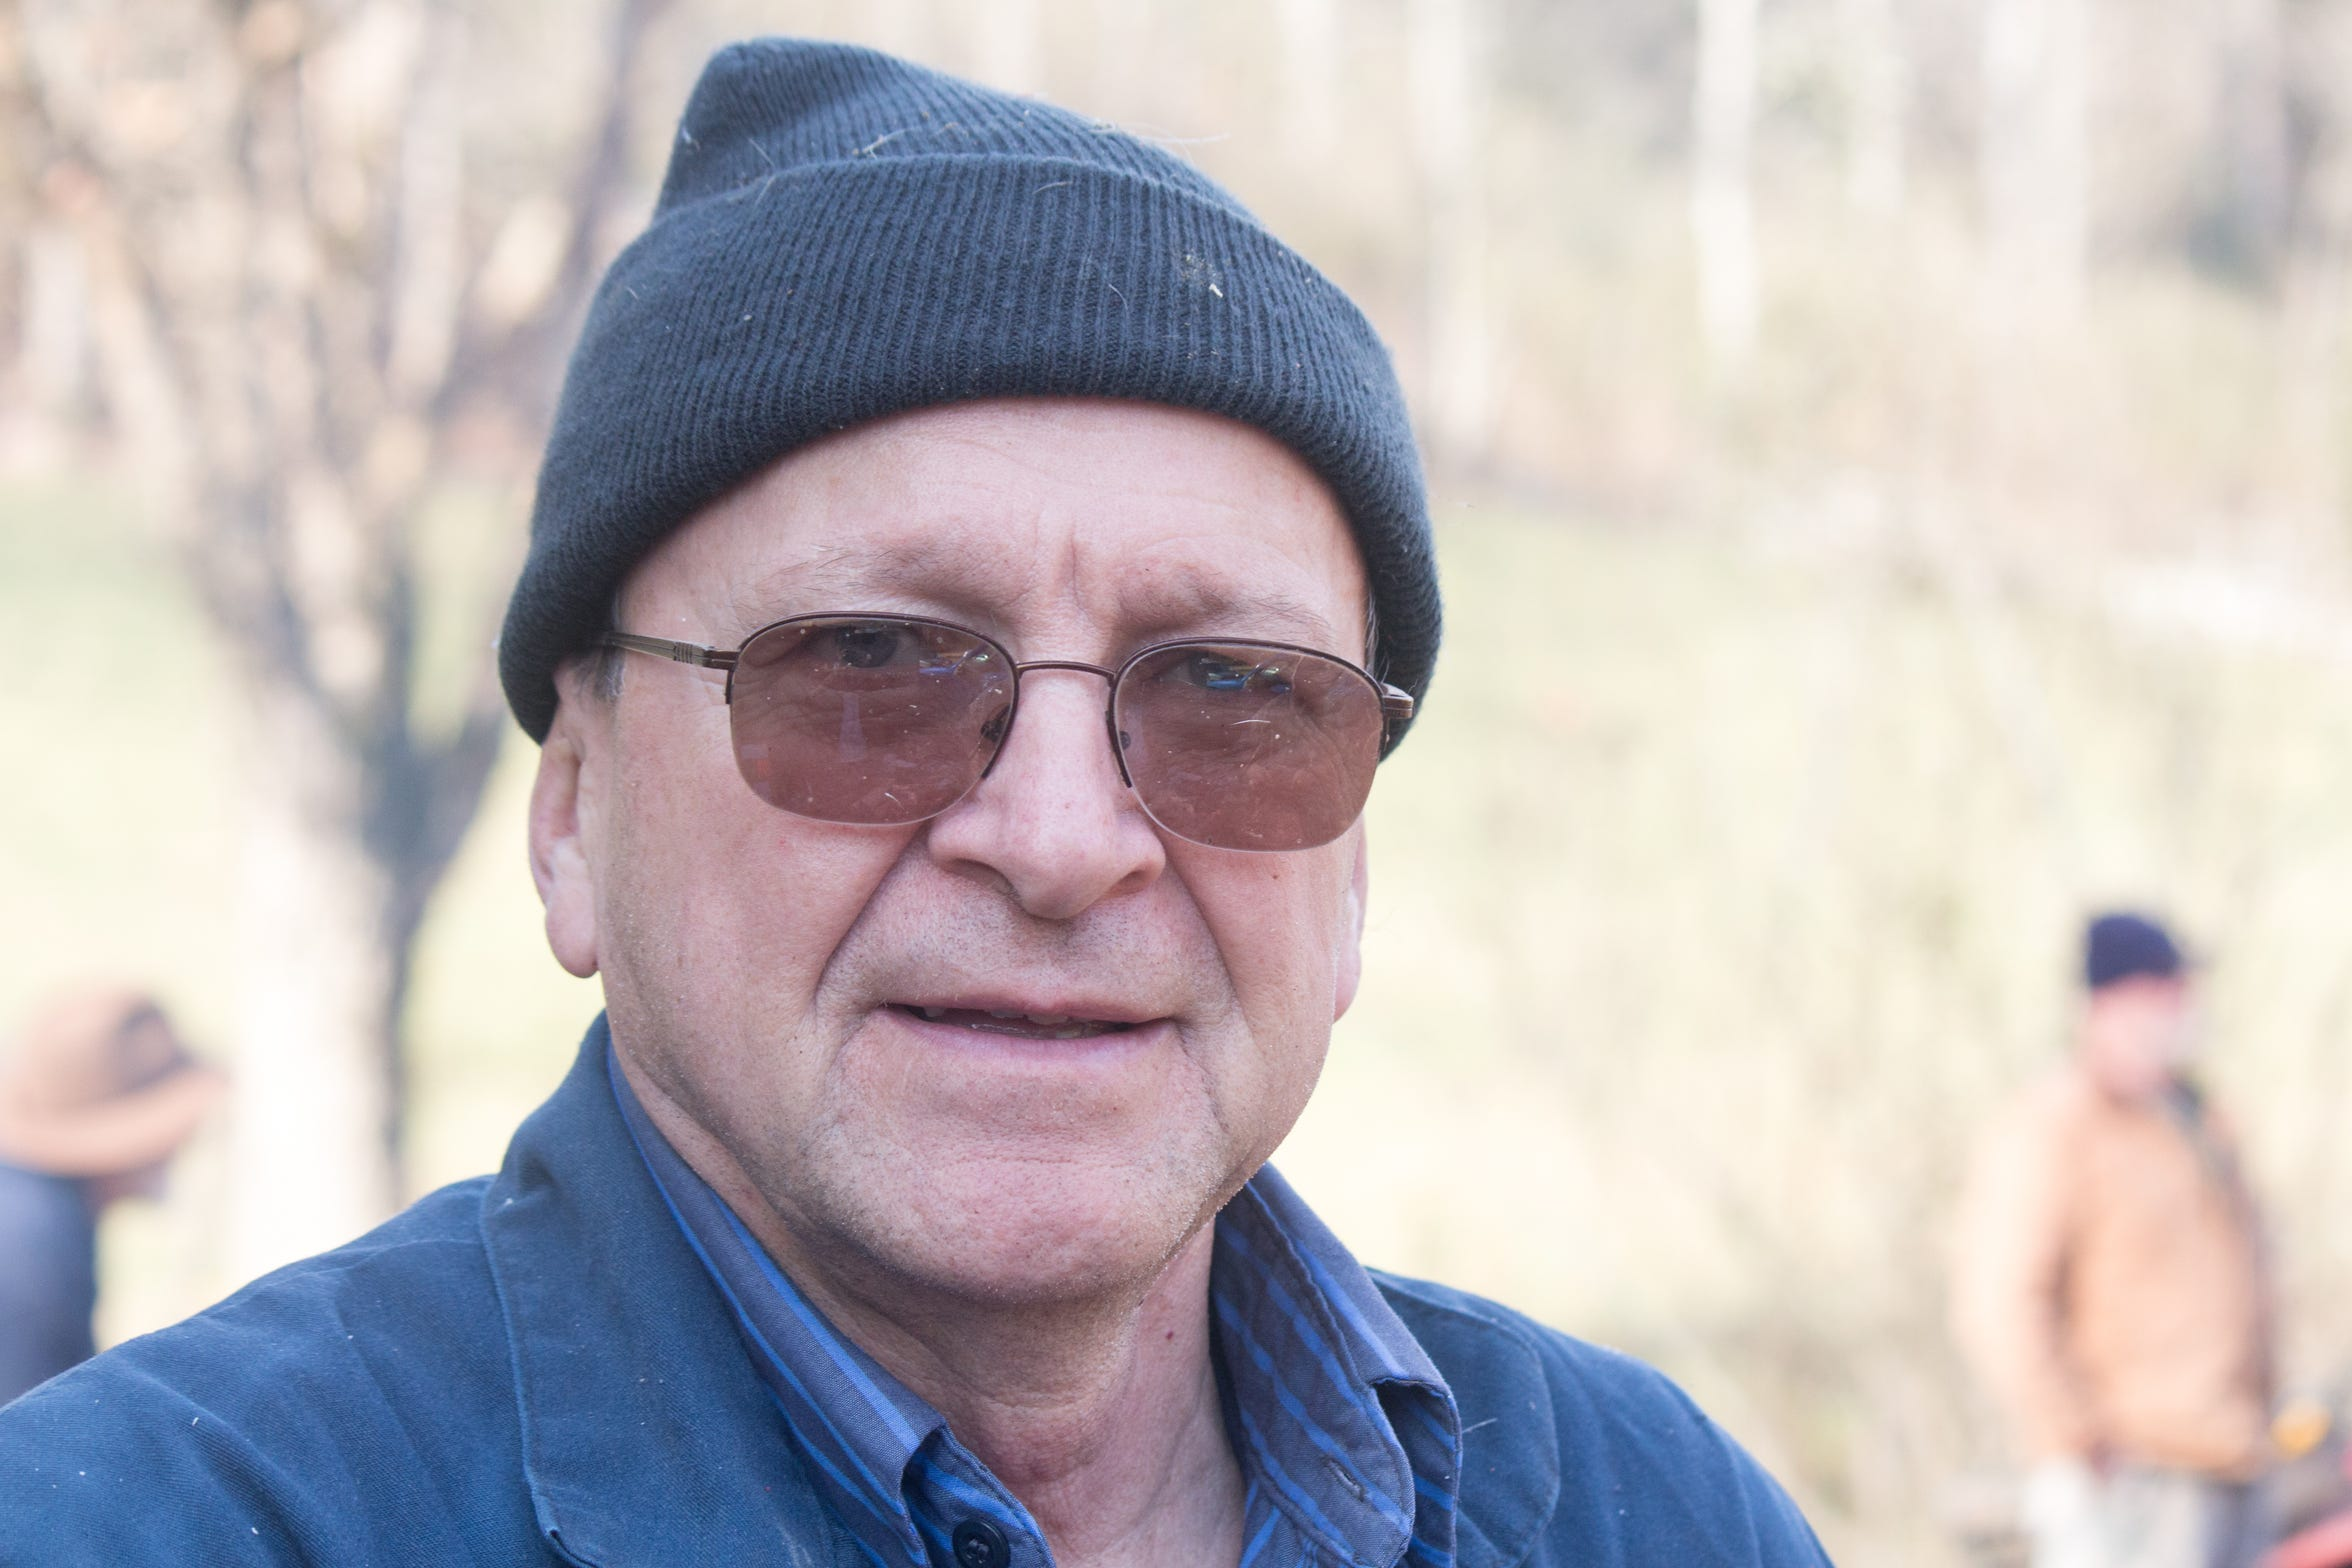 Roger Fields, a former coal miner and a pastor in rural Letcher County, says he pays $125 per month for satellite internet. It's a big expense, but he says he doesn't want to live anywhere elsewhere.